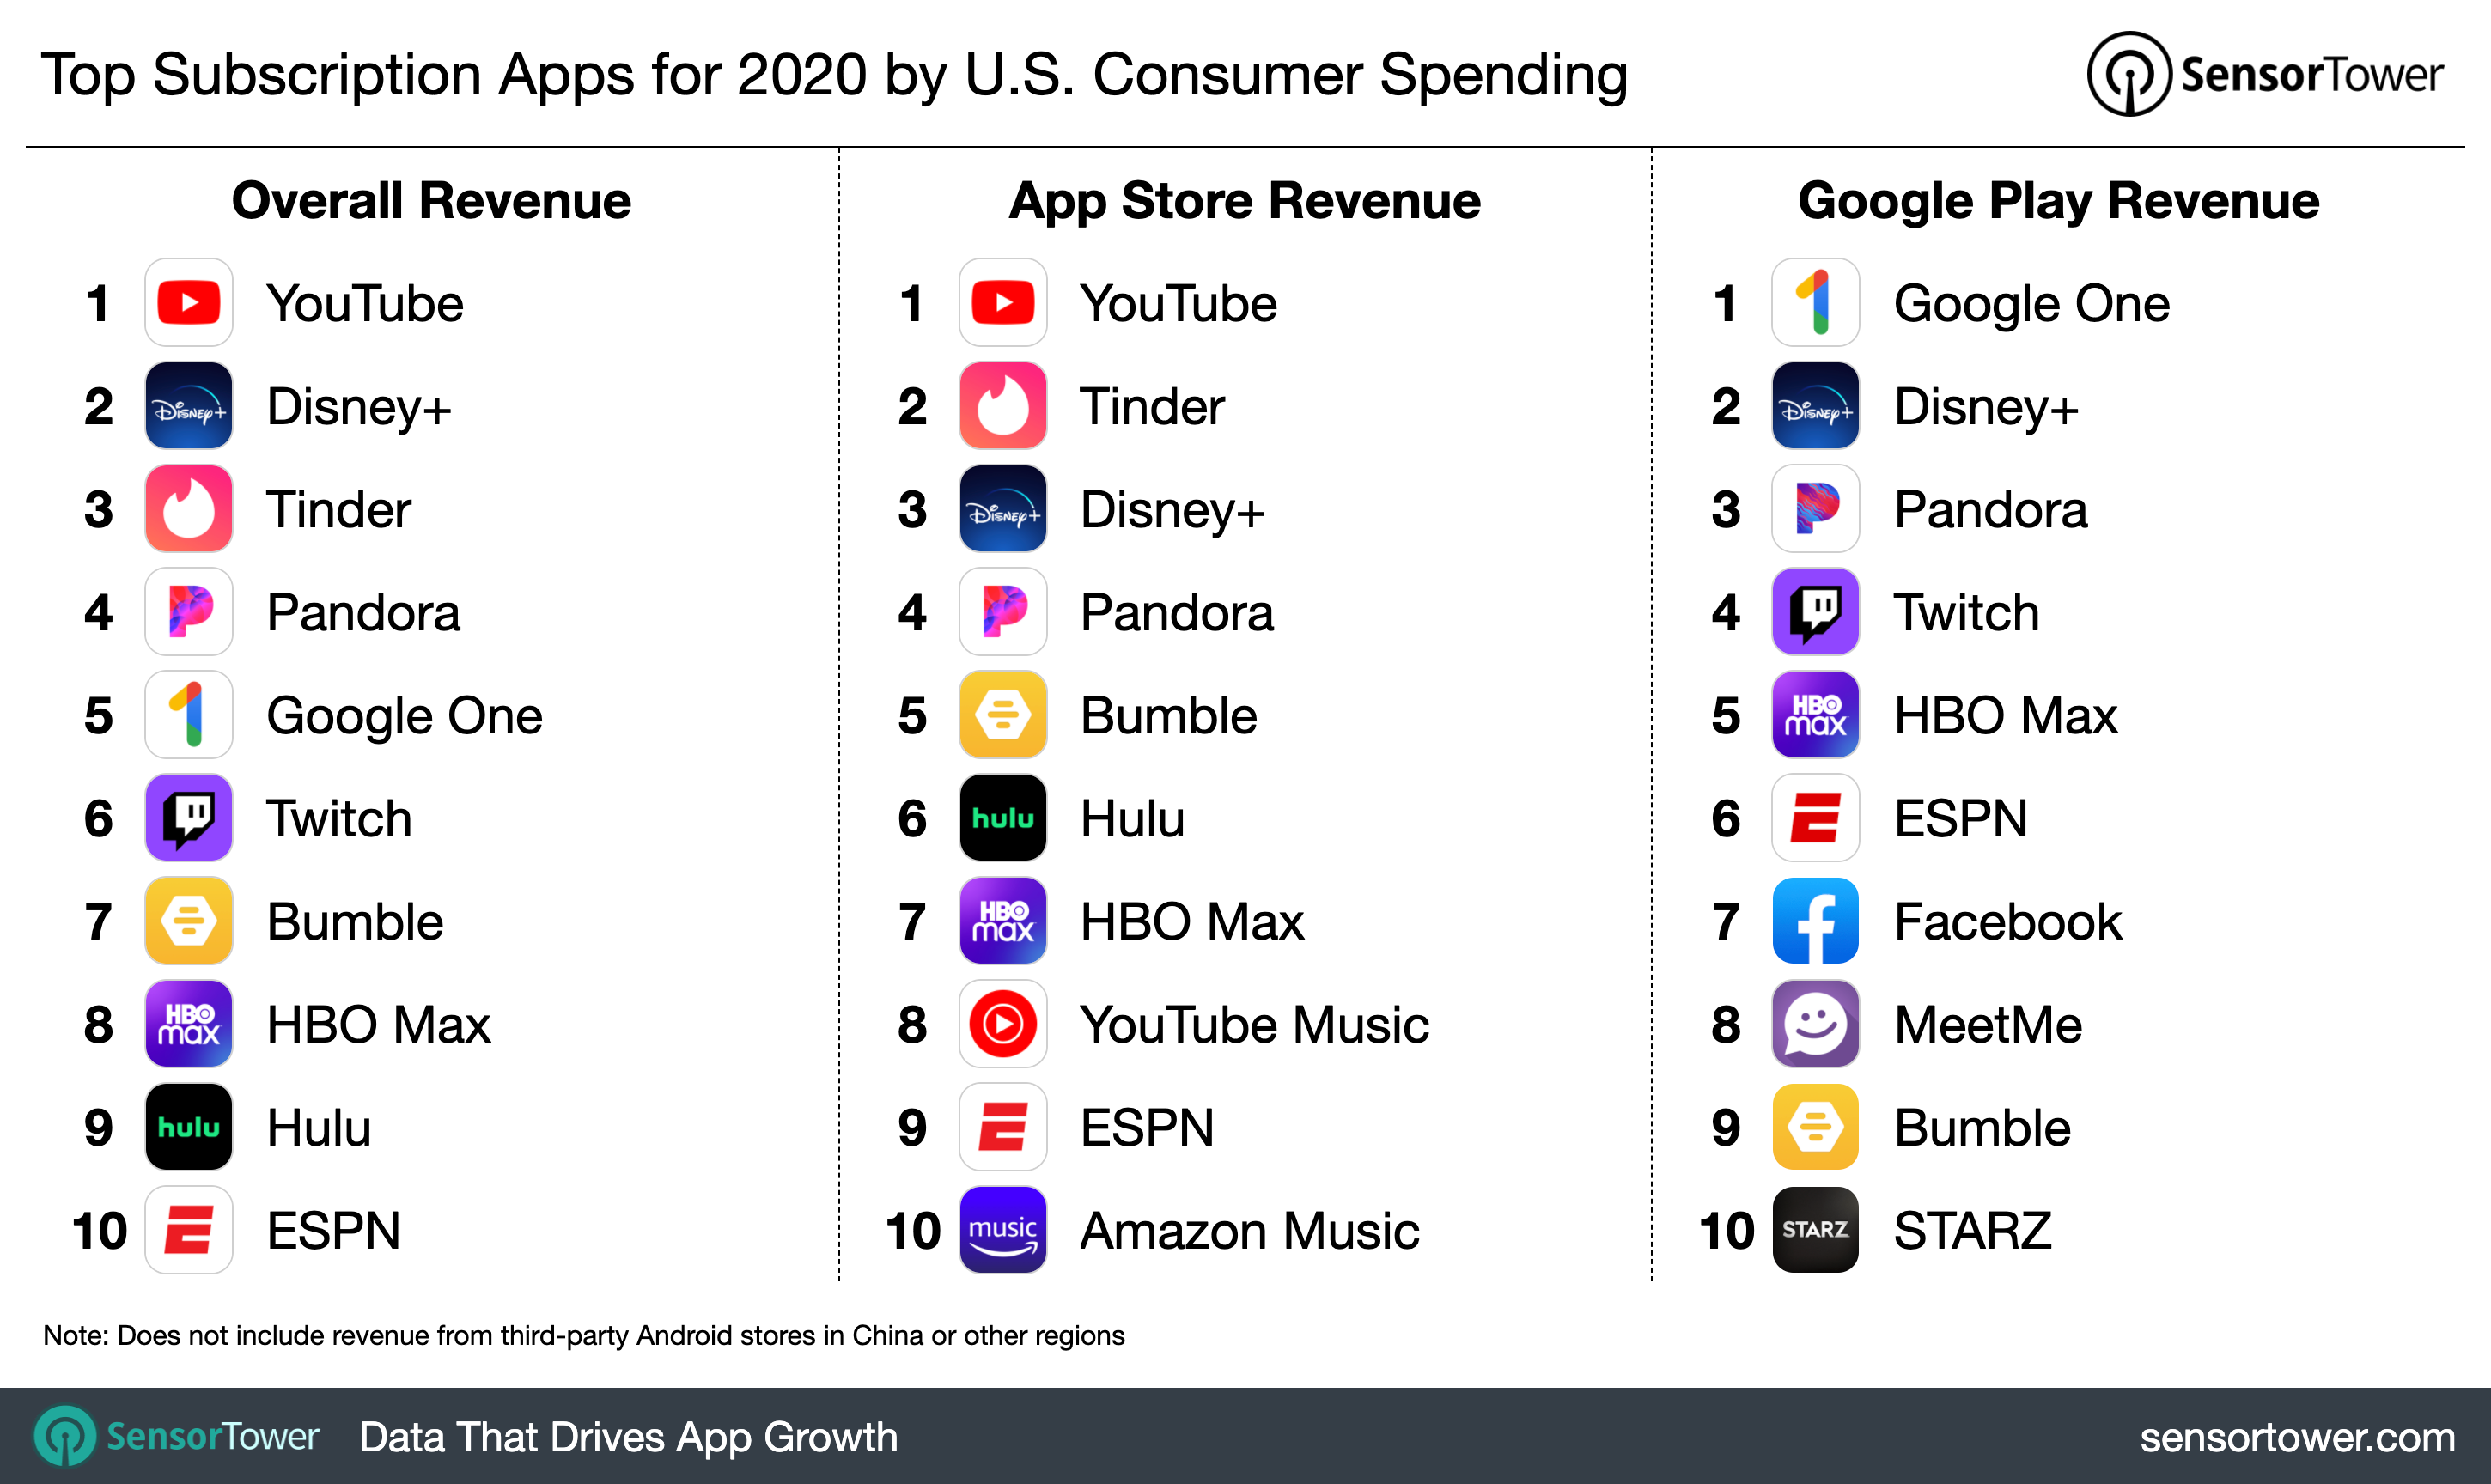 YouTube was the subscription app leader across both stores